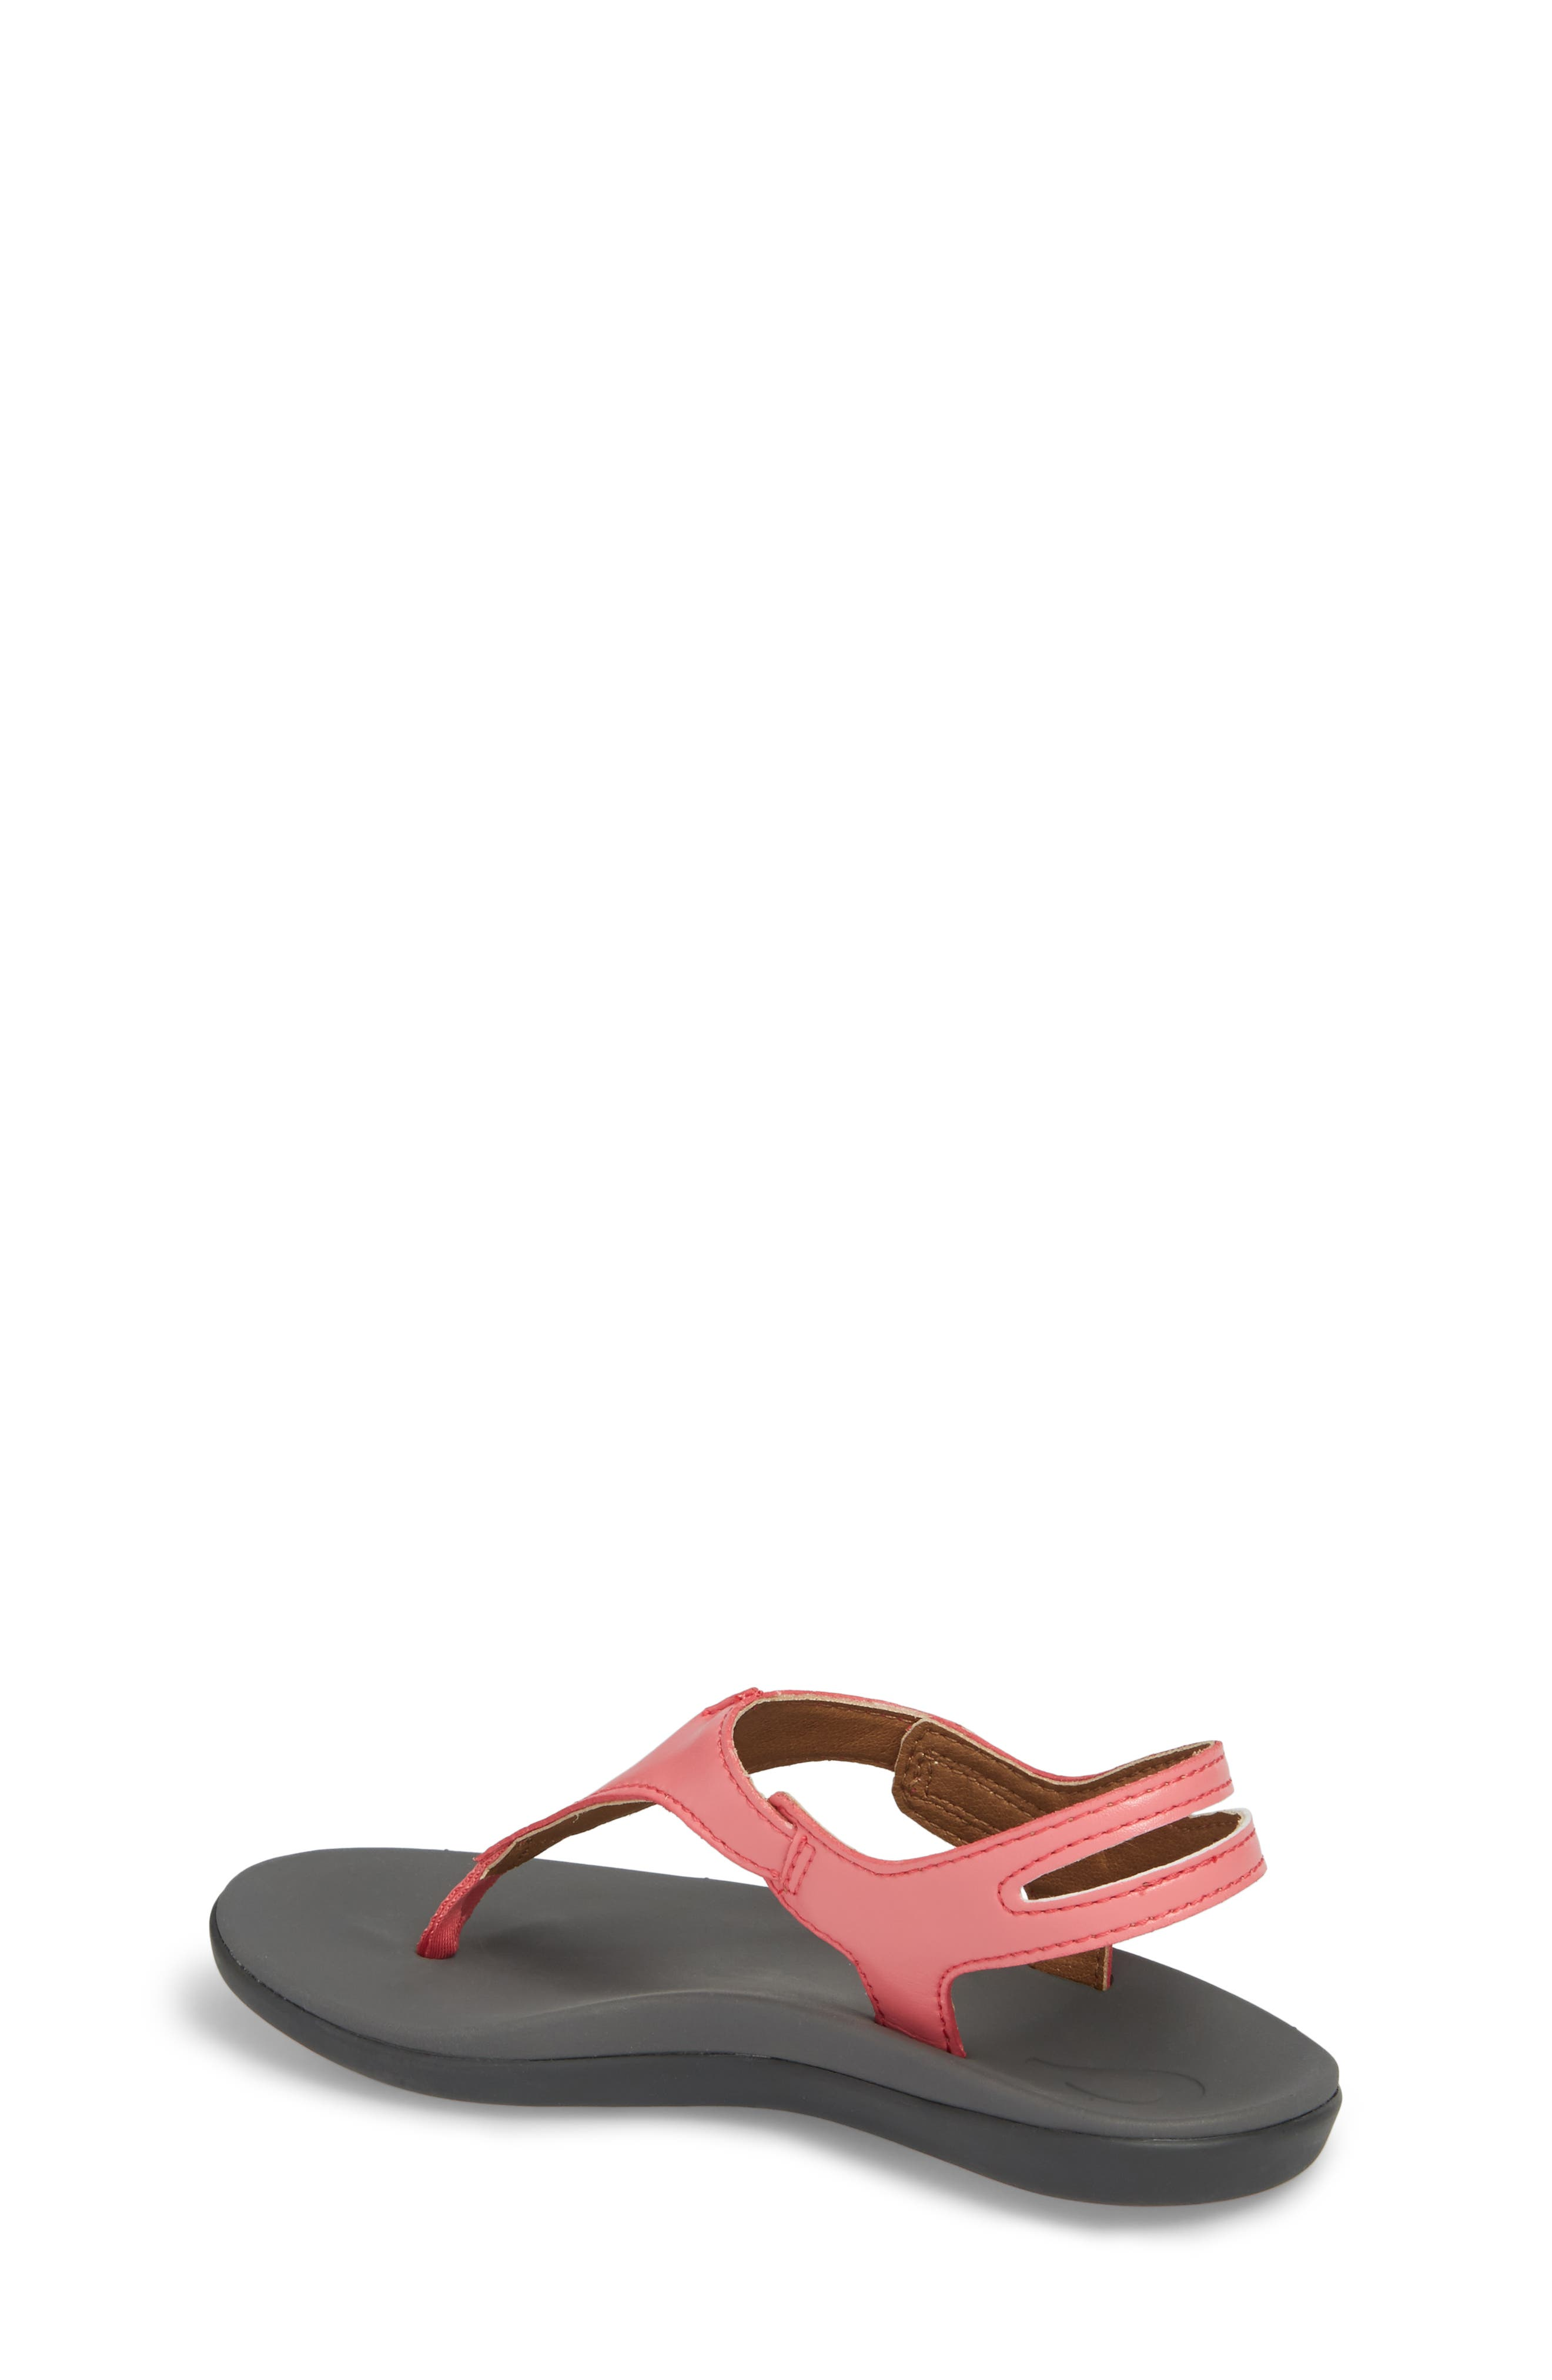 Eheu Sandal,                             Alternate thumbnail 2, color,                             Guava Jelly/ Charcoal